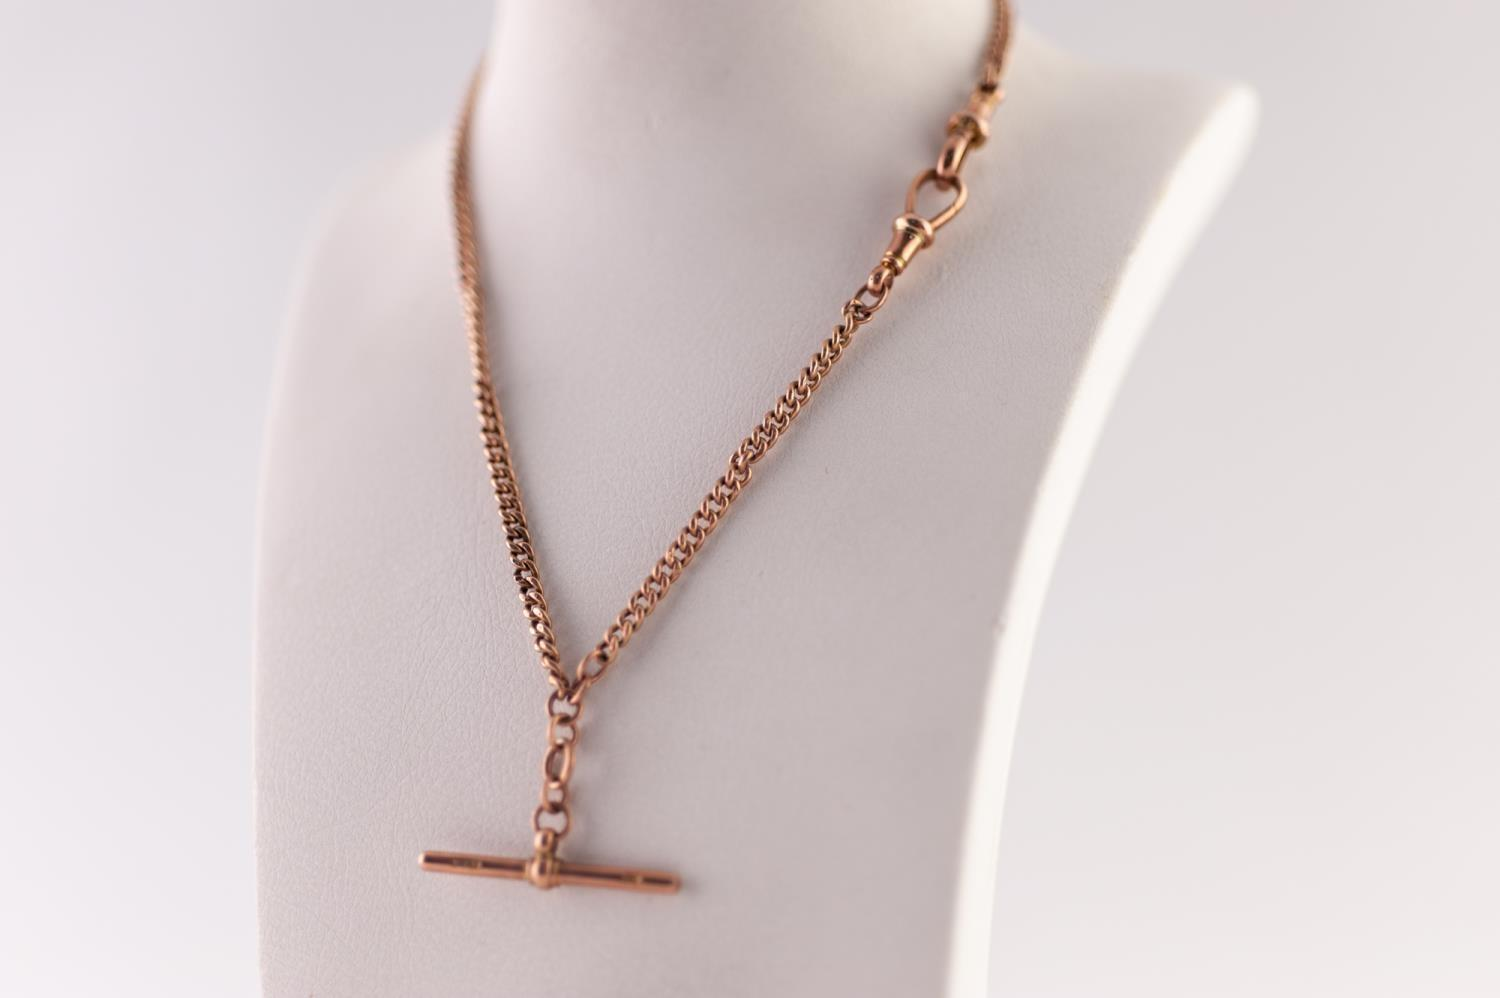 Lot 208 - 9ct ROSE GOLD CURB LINK ALBERT CHAIN, with T-bar and two clips, length 33.5cm, 6.57g